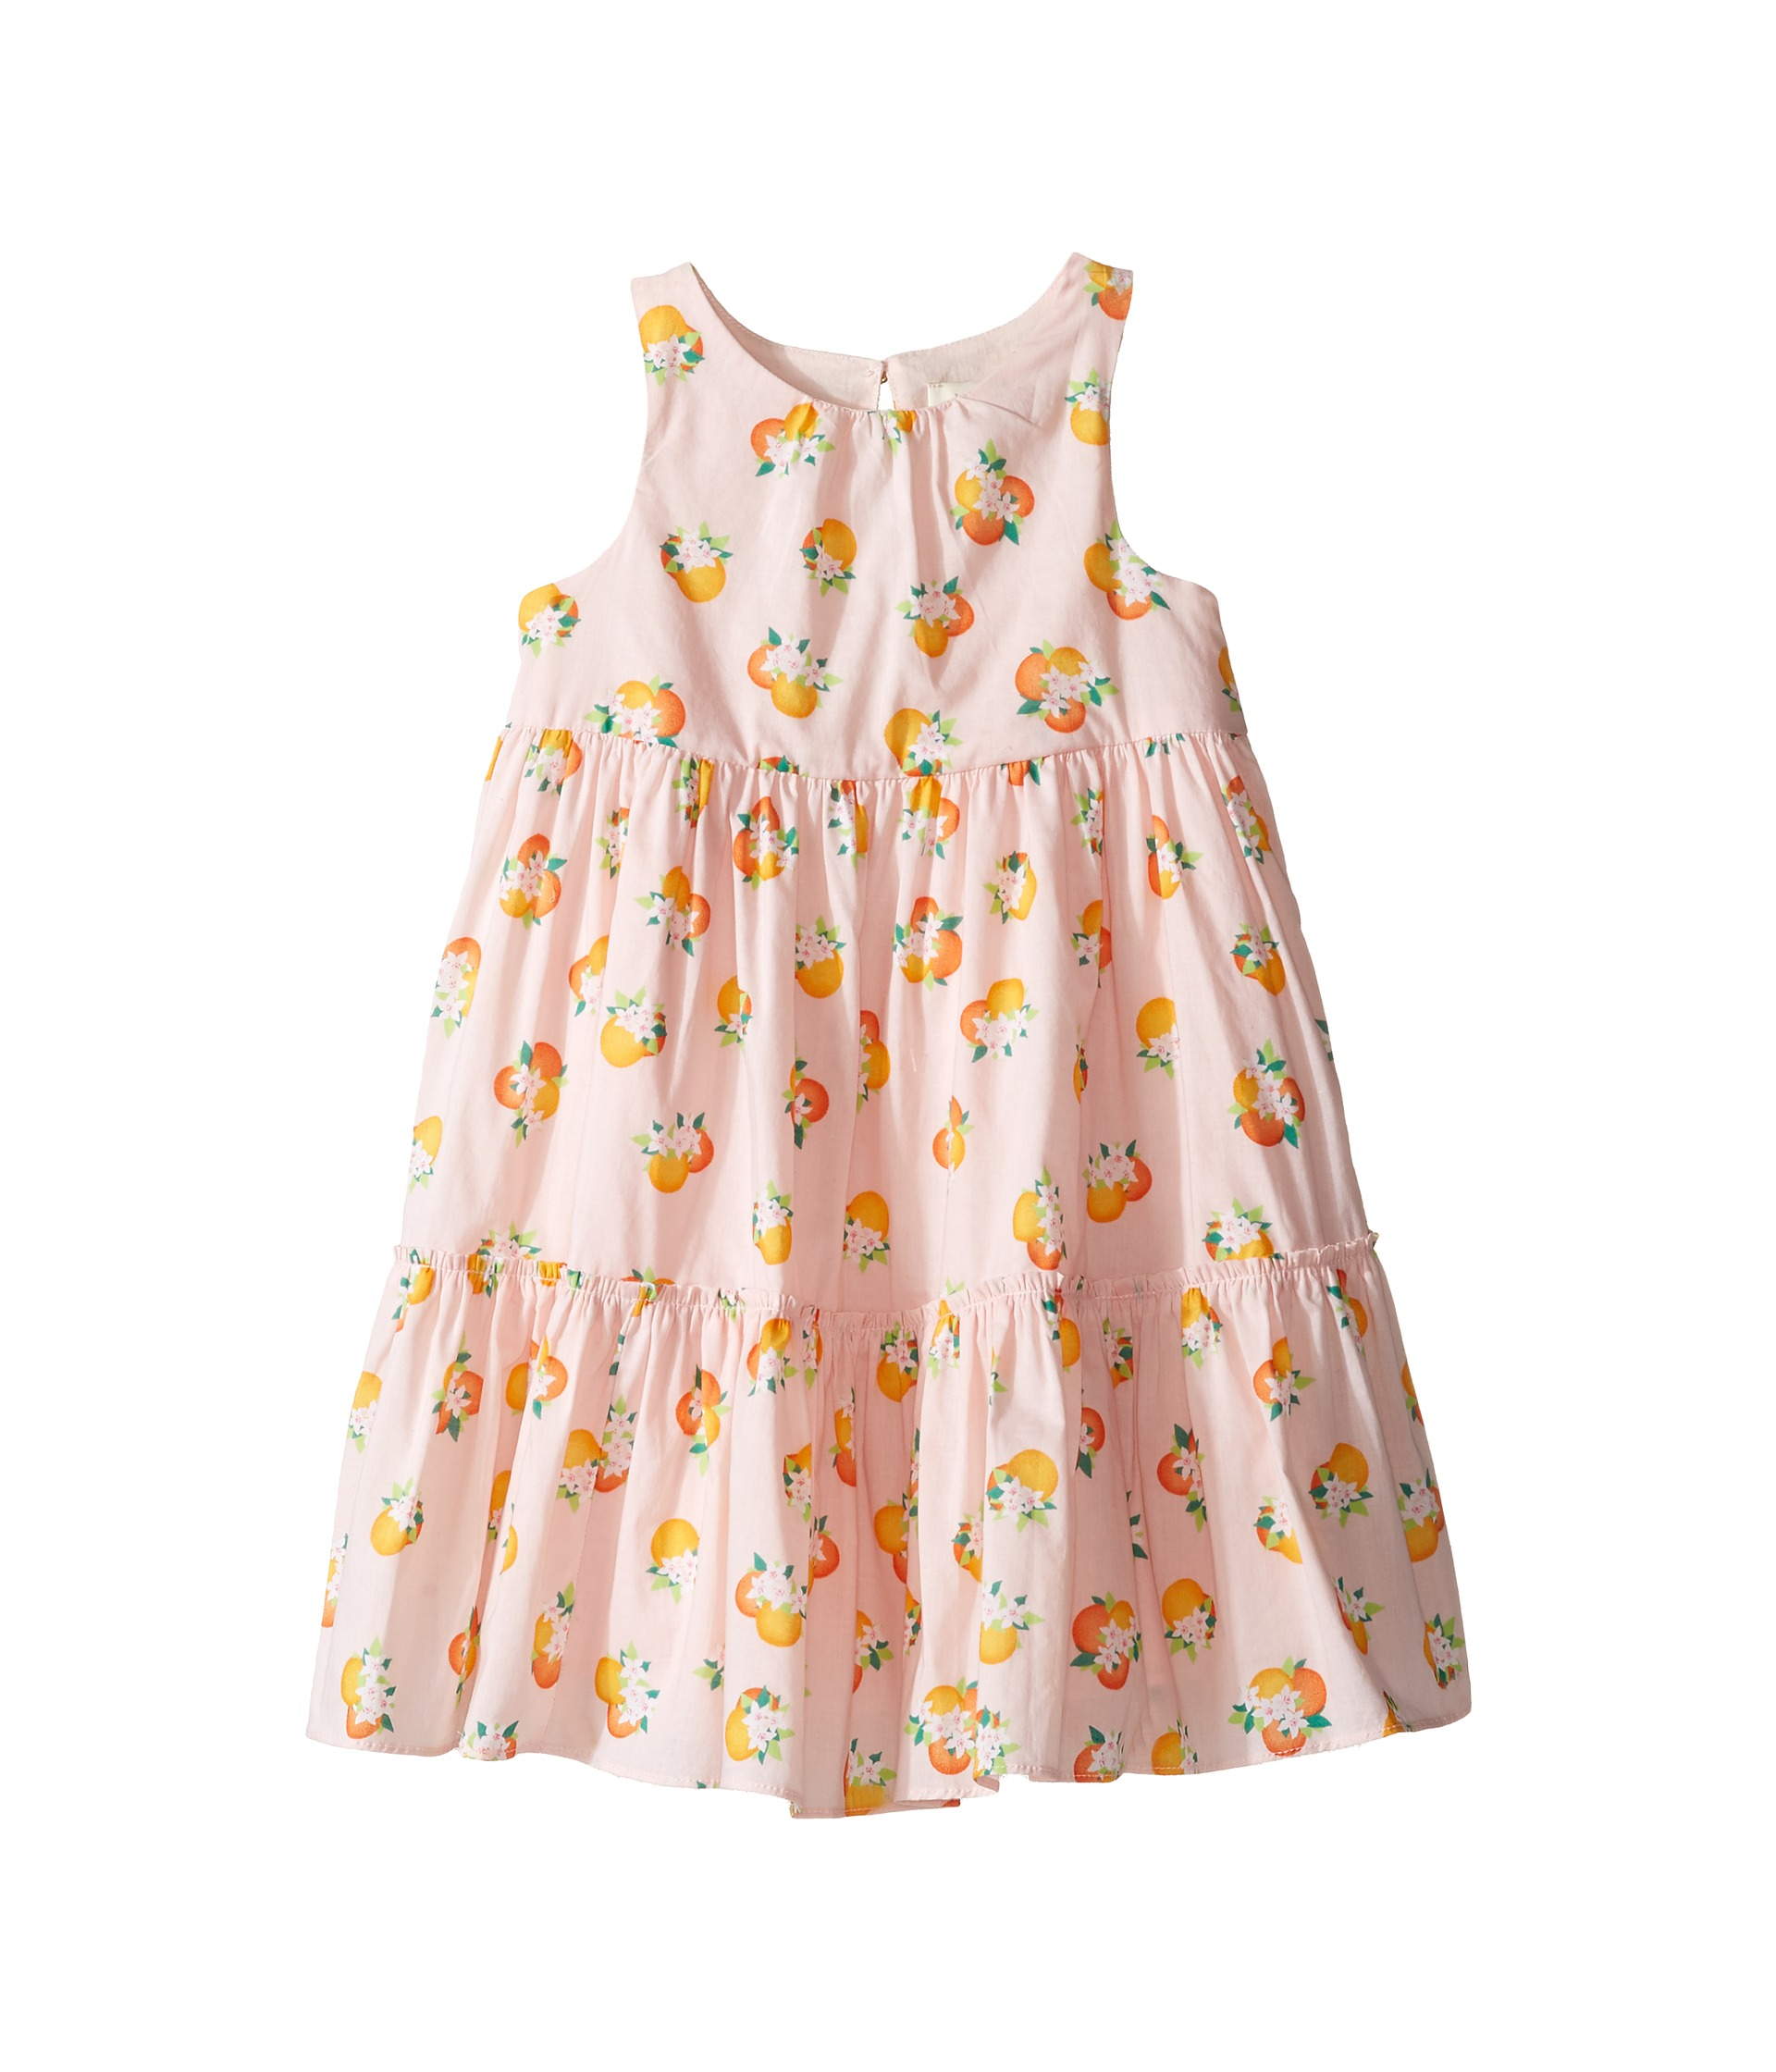 Shop for Girls' Dresses & Rompers at Target. Find the perfect girls' dresses for summer, holidays, casual and flower girls.